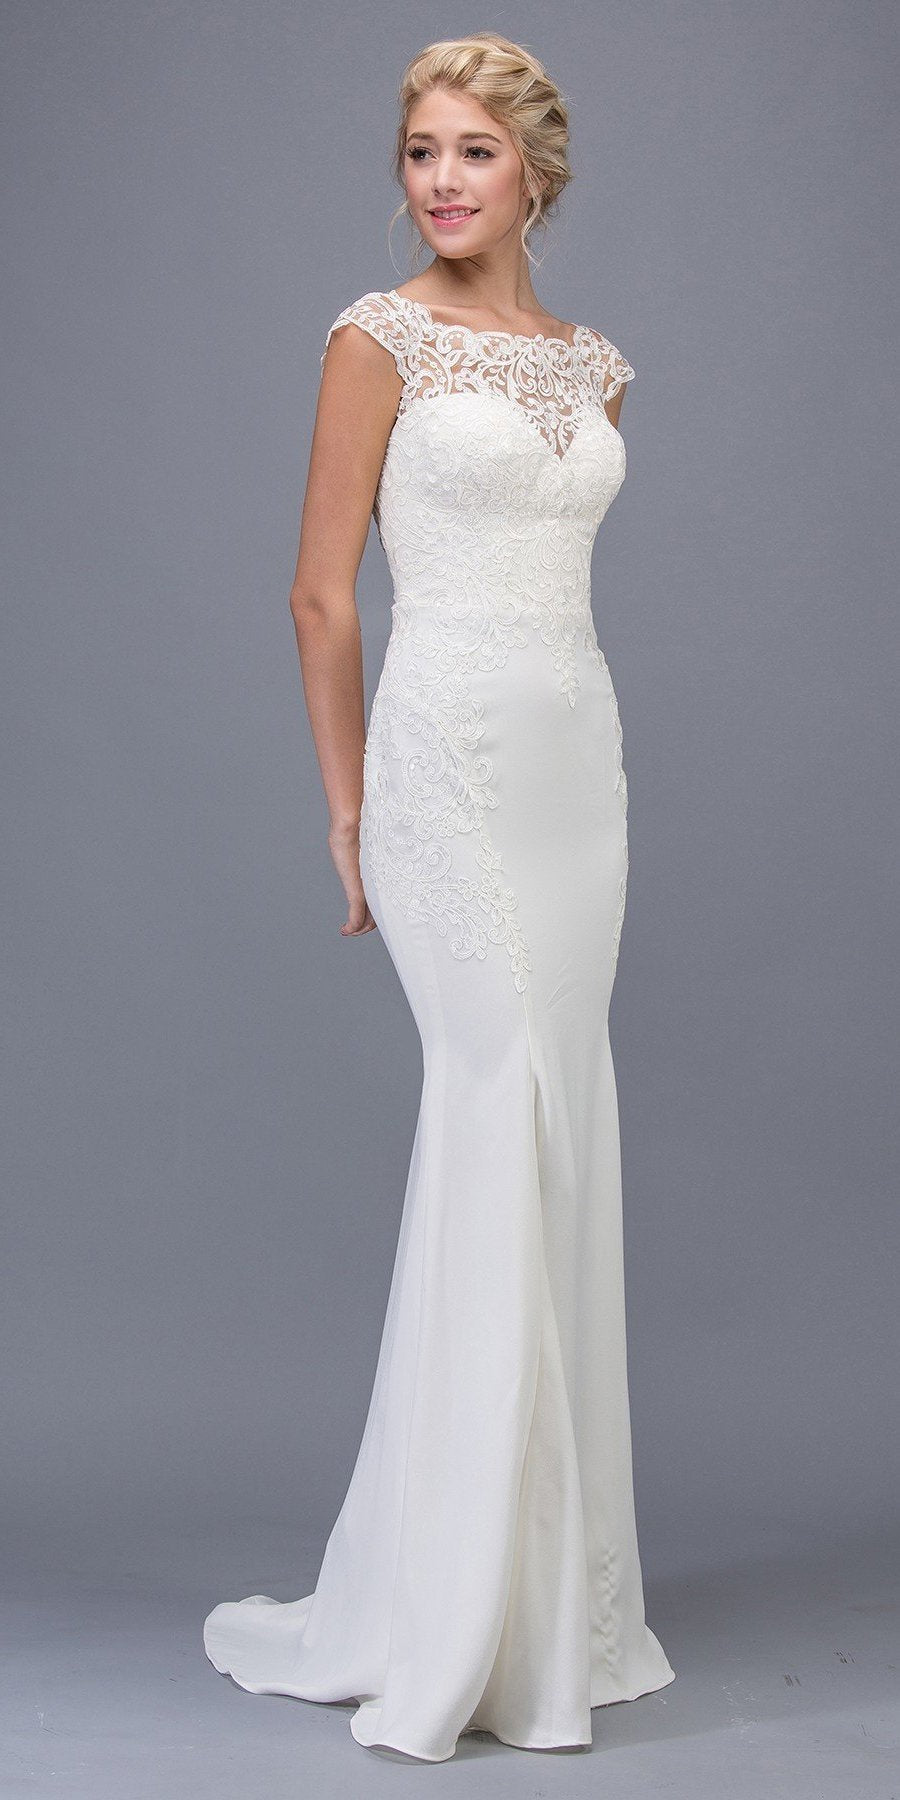 White Lace Wedding Gown